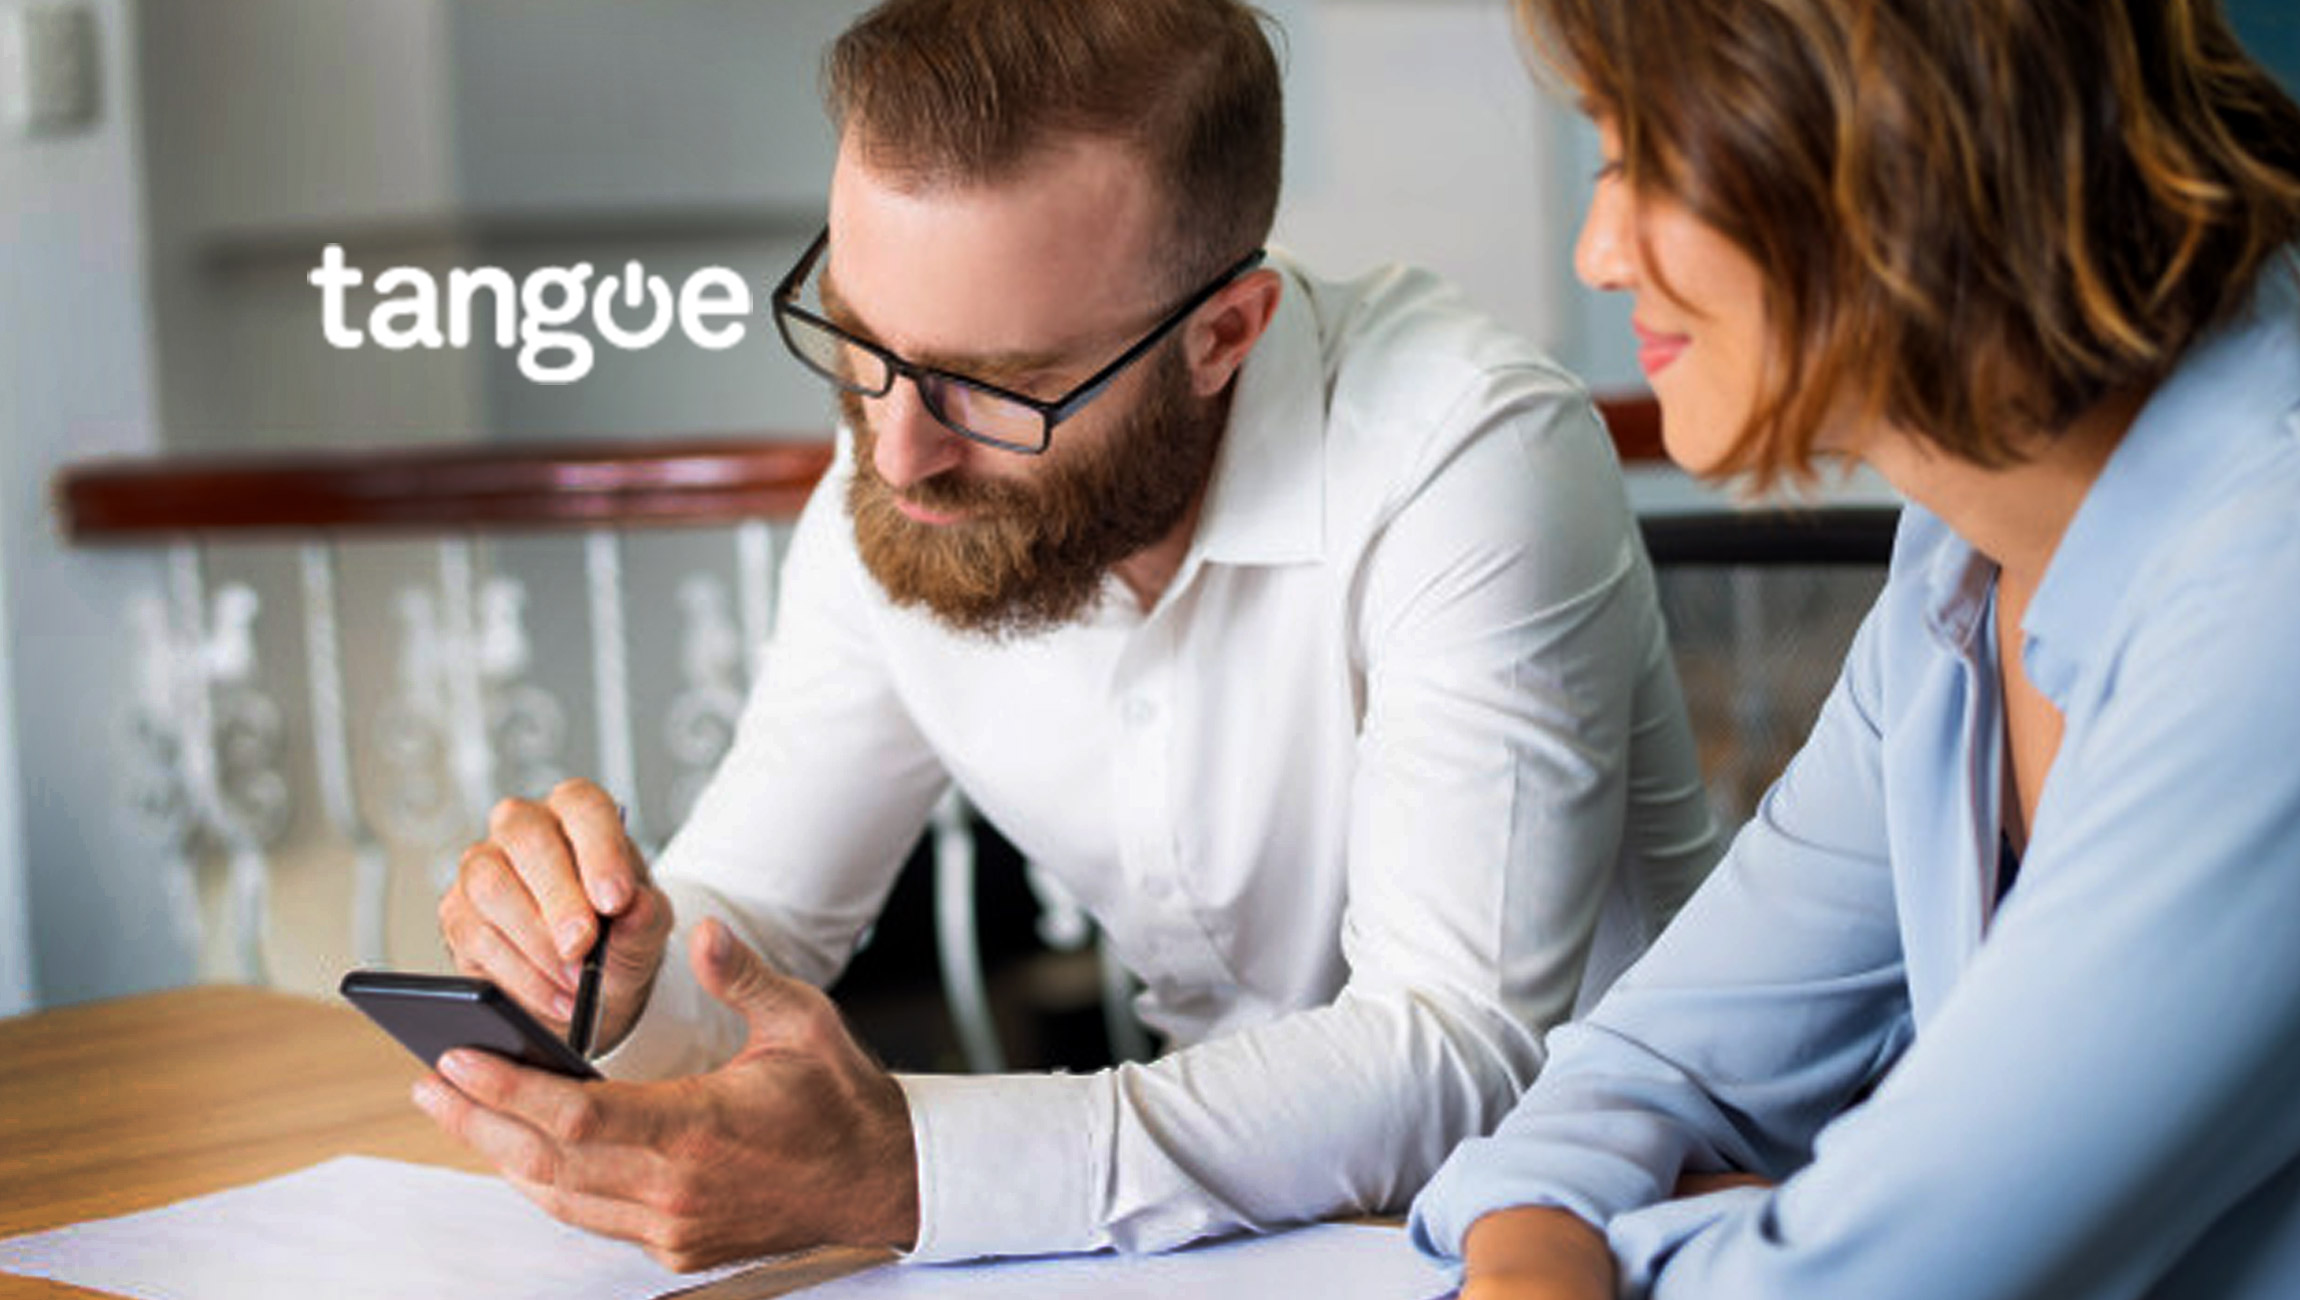 Tangoe Launches the First goBot to Automate Fixed Telecom Invoice Processing